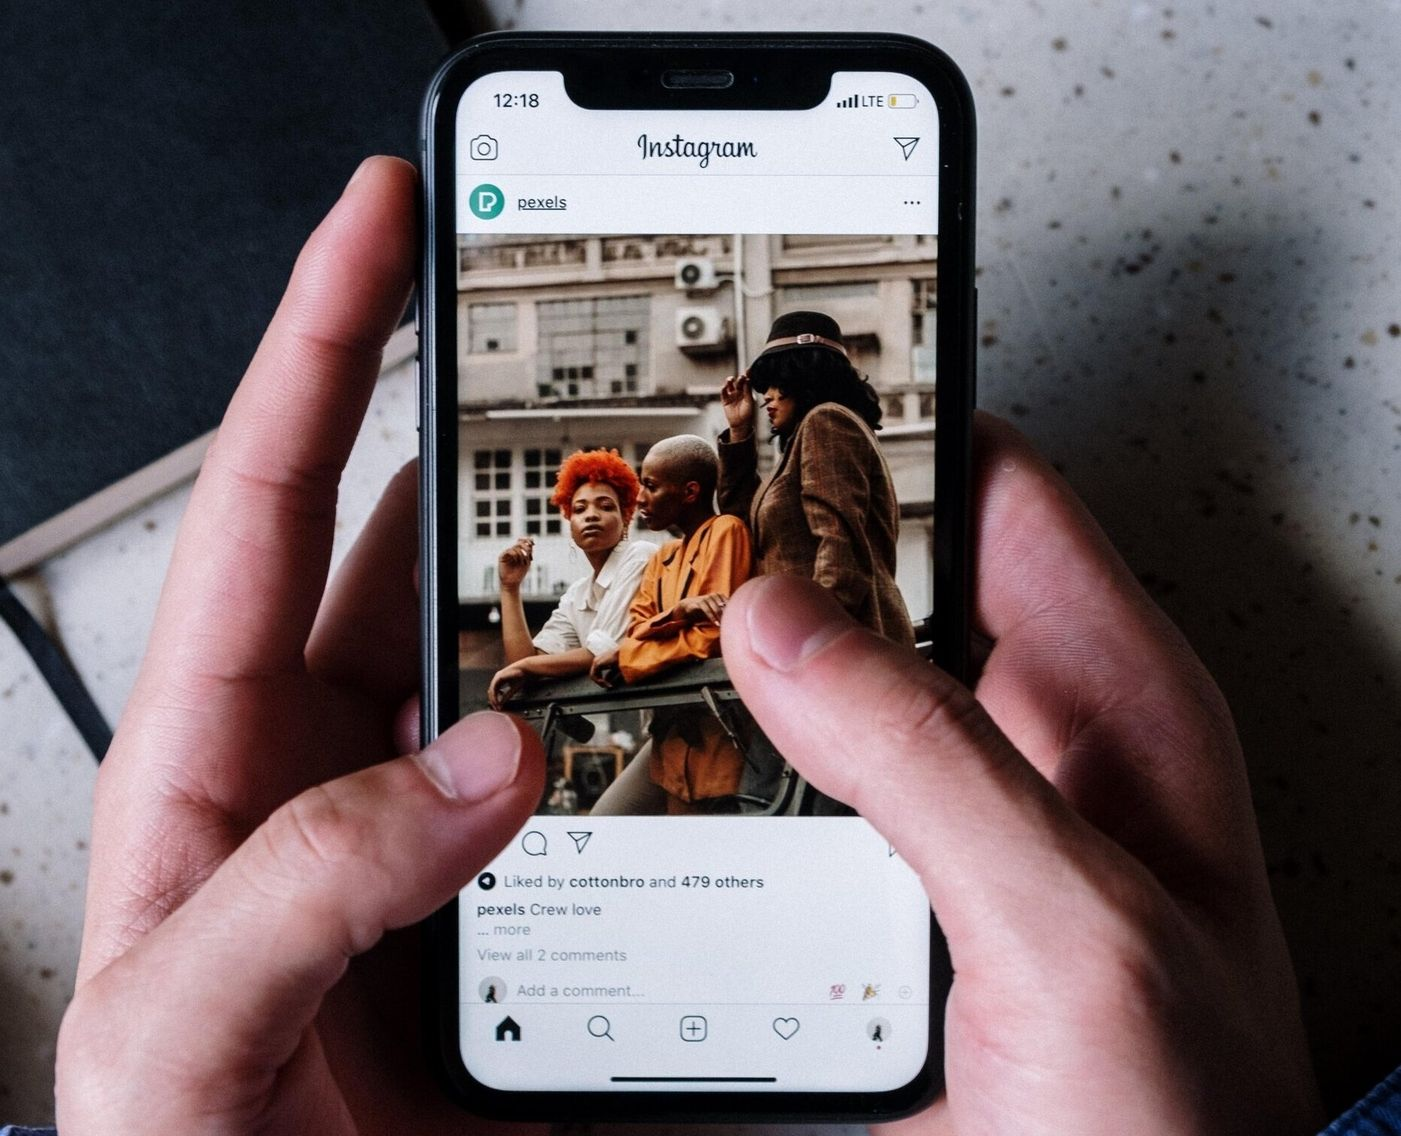 4 Ways COVID-19 Has Changed Our Social Media Habits